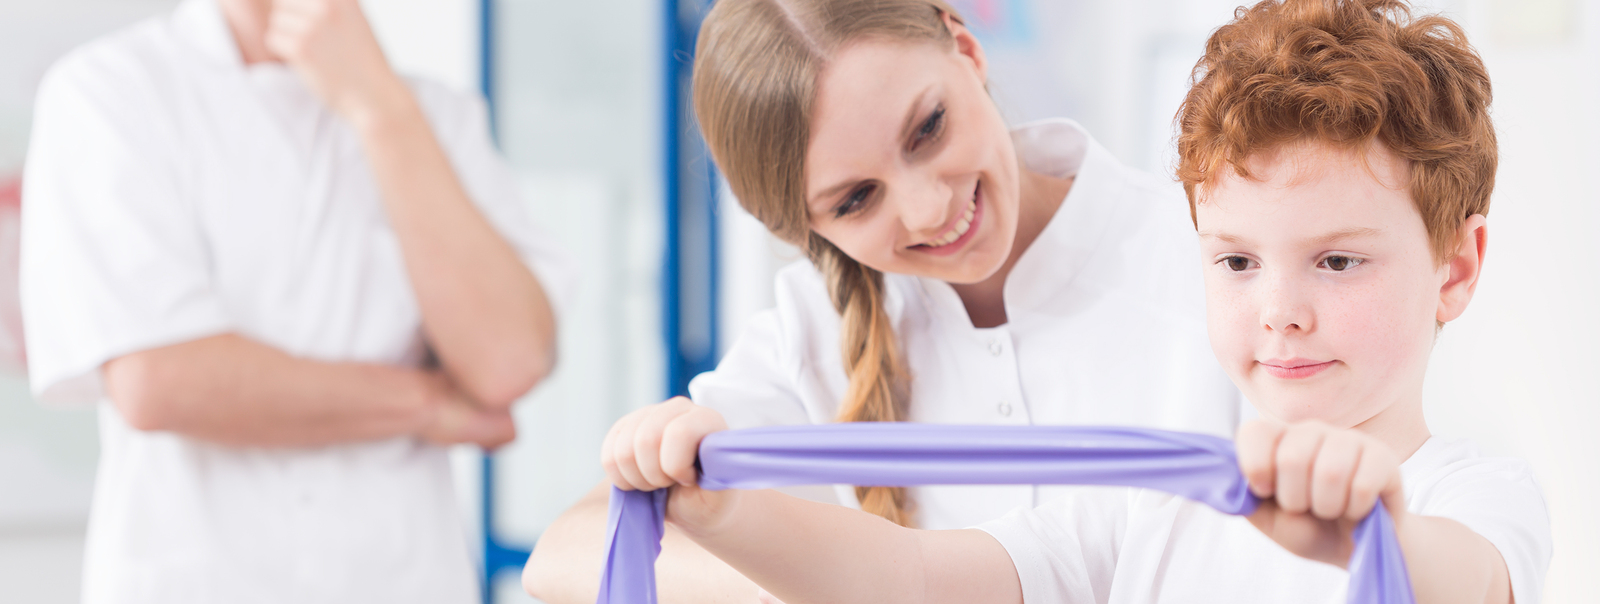 The following health conditions are commonly treated by physical therapists specializing in the area of Pediatrics: